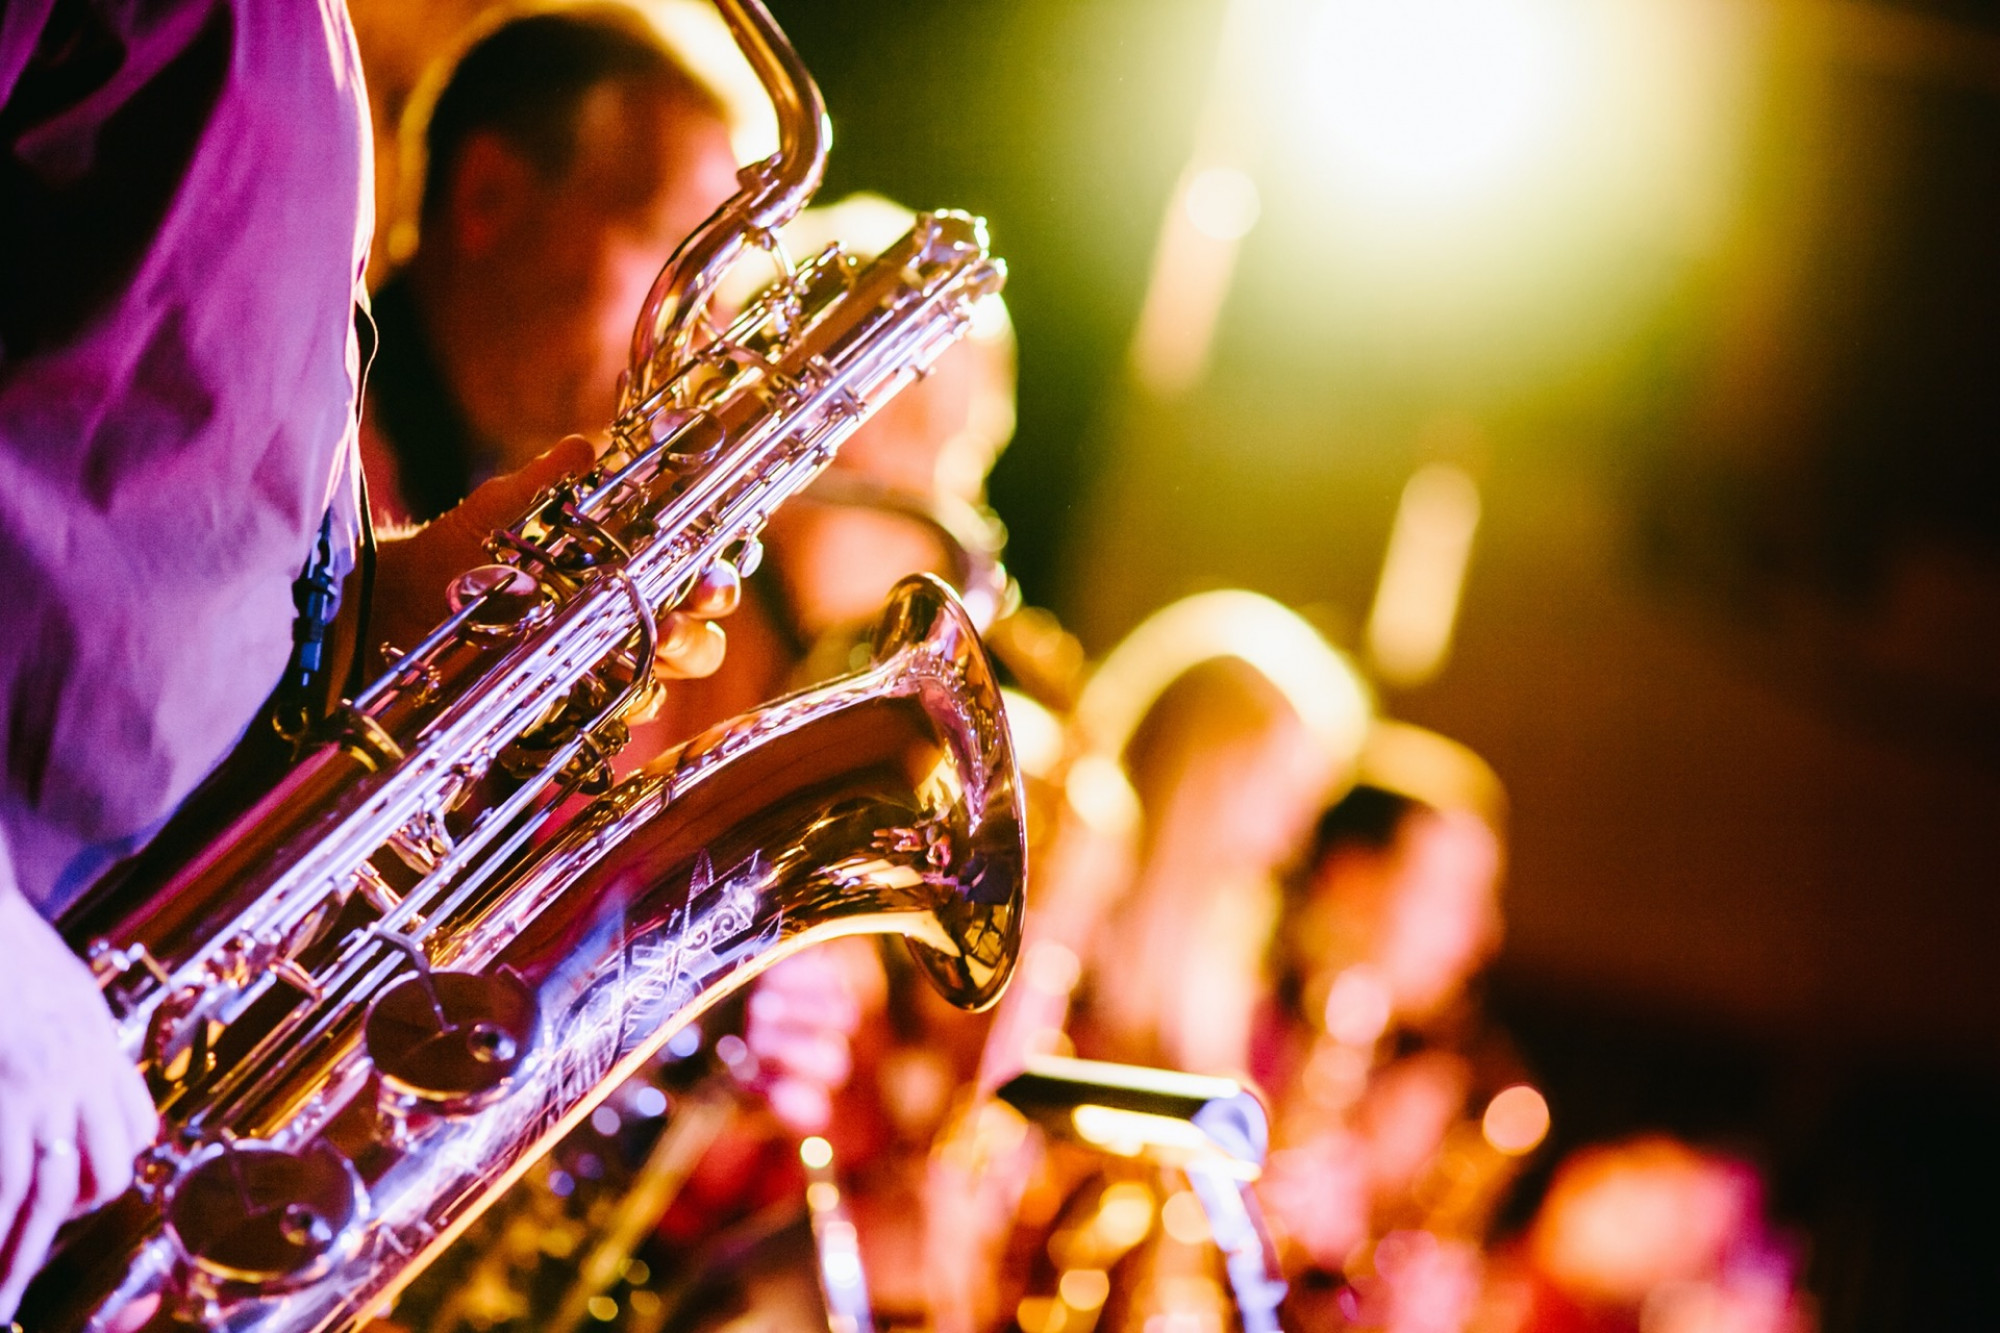 University musicians set to make a Beautiful Noise as part of the Canterbury Festival next week